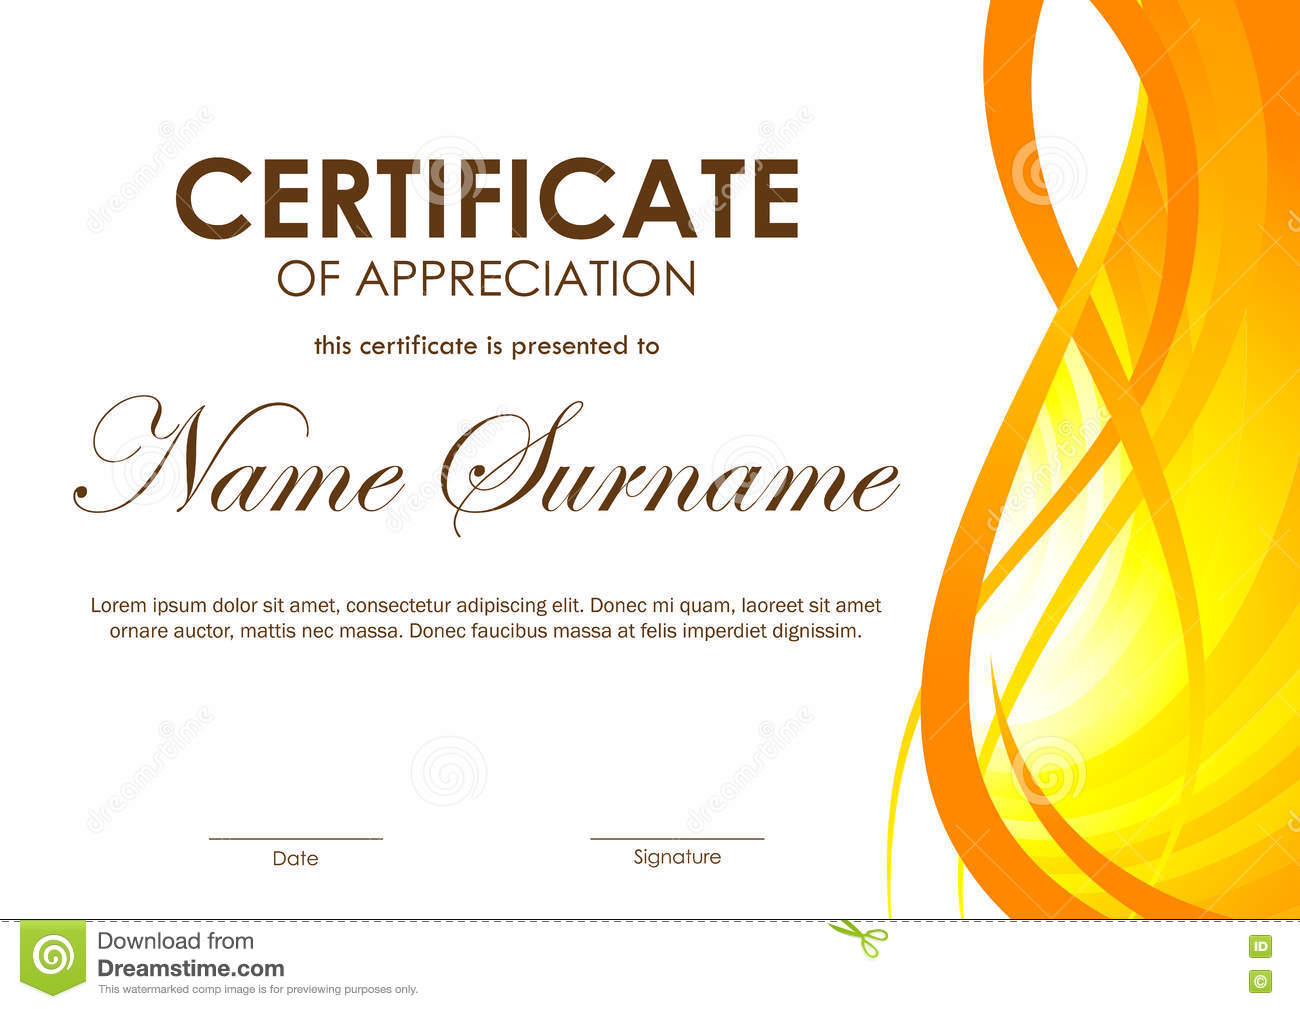 Certificate Of Appreciation | Certificate Of Appreciation Template Illustration 81908562 Megapixl